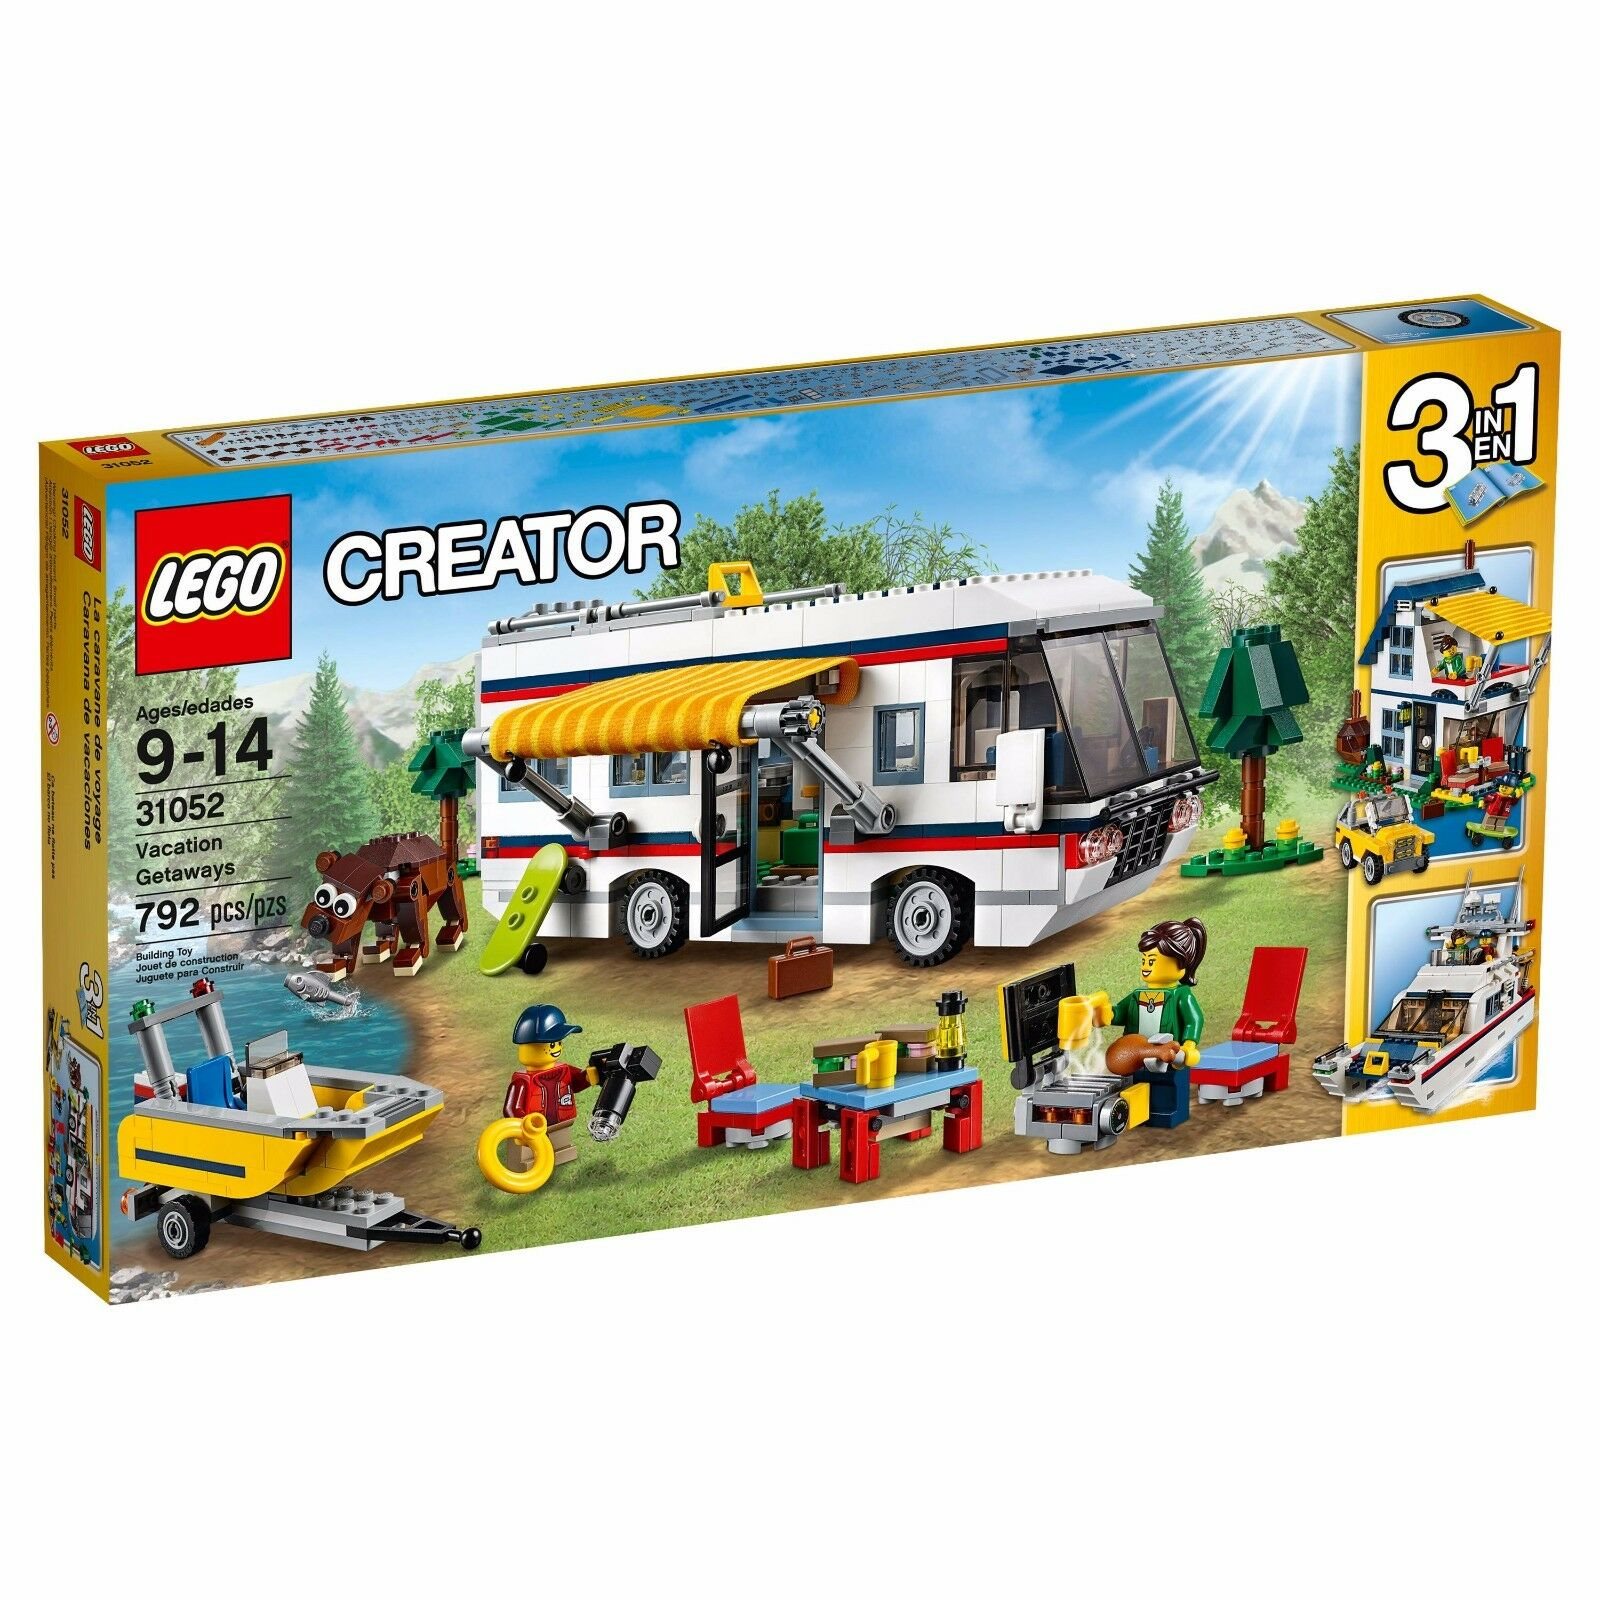 LEGO 31052 Creator Vacation Getaways Building Set 792 pieces